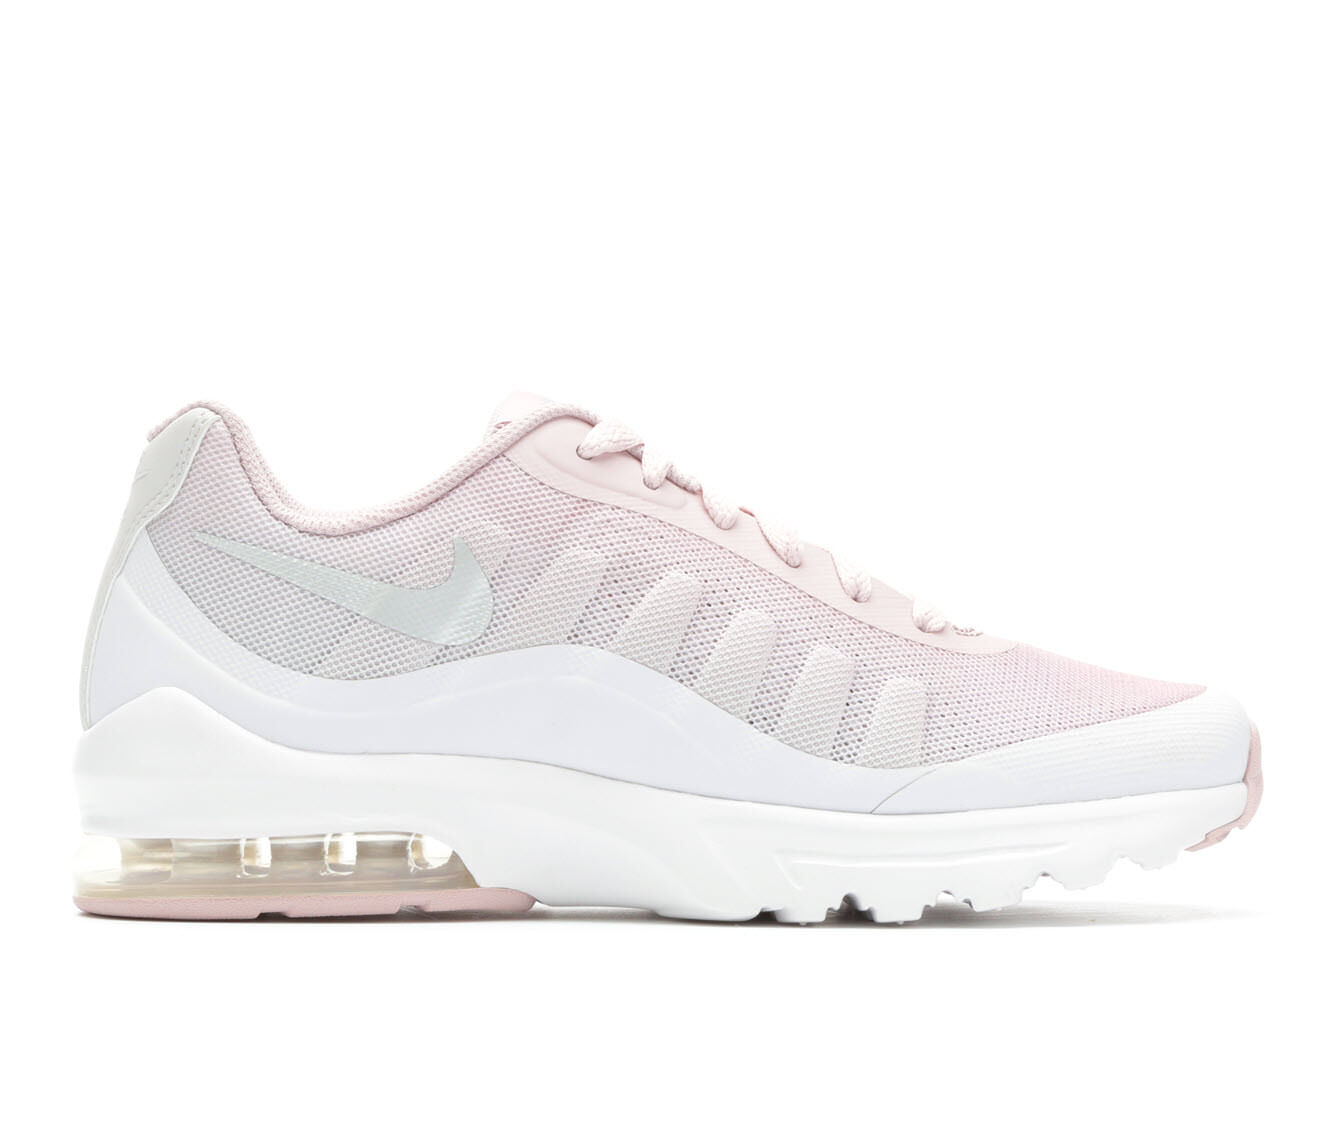 discount wiki cheap sale shop for Nike Air Max Invigor Women's ... Sneakers jb54jT0j